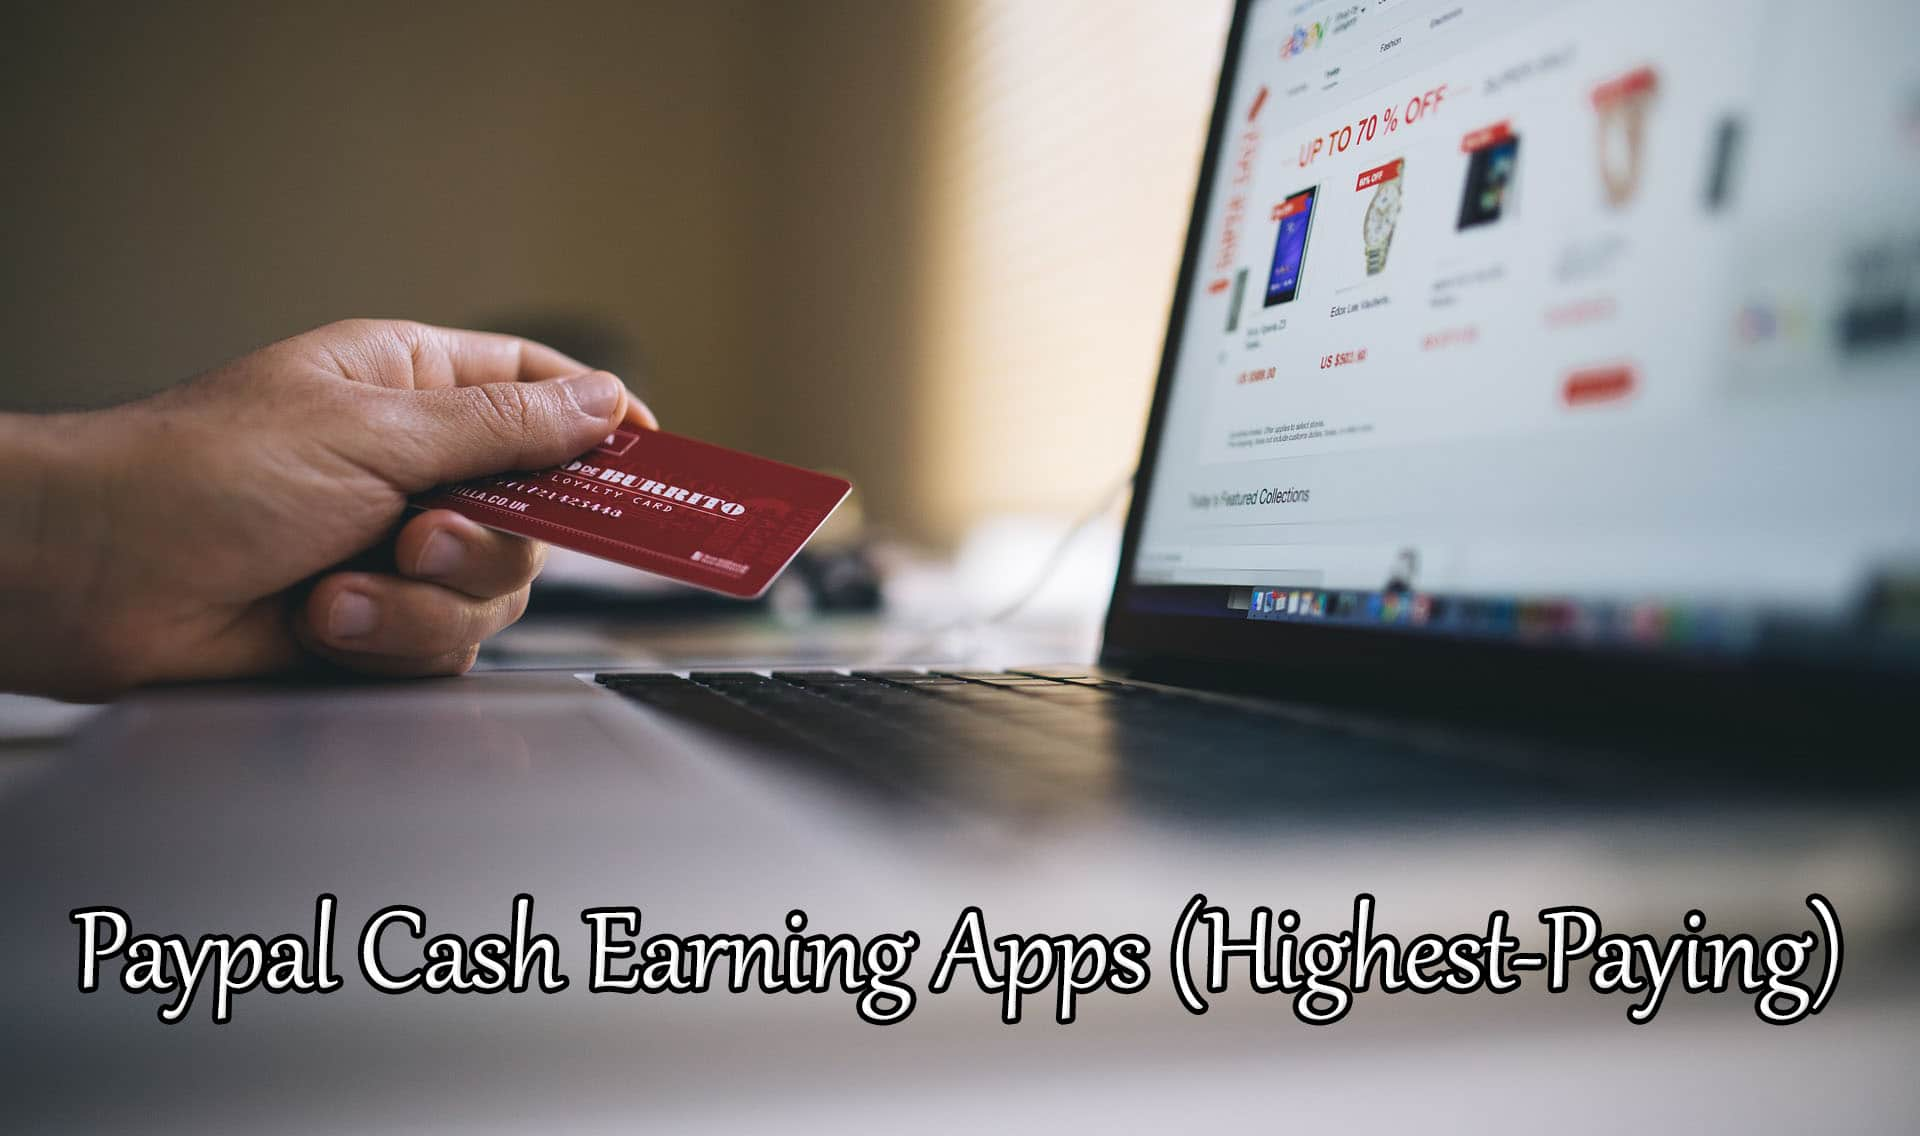 Paypal Cash Earning Apps